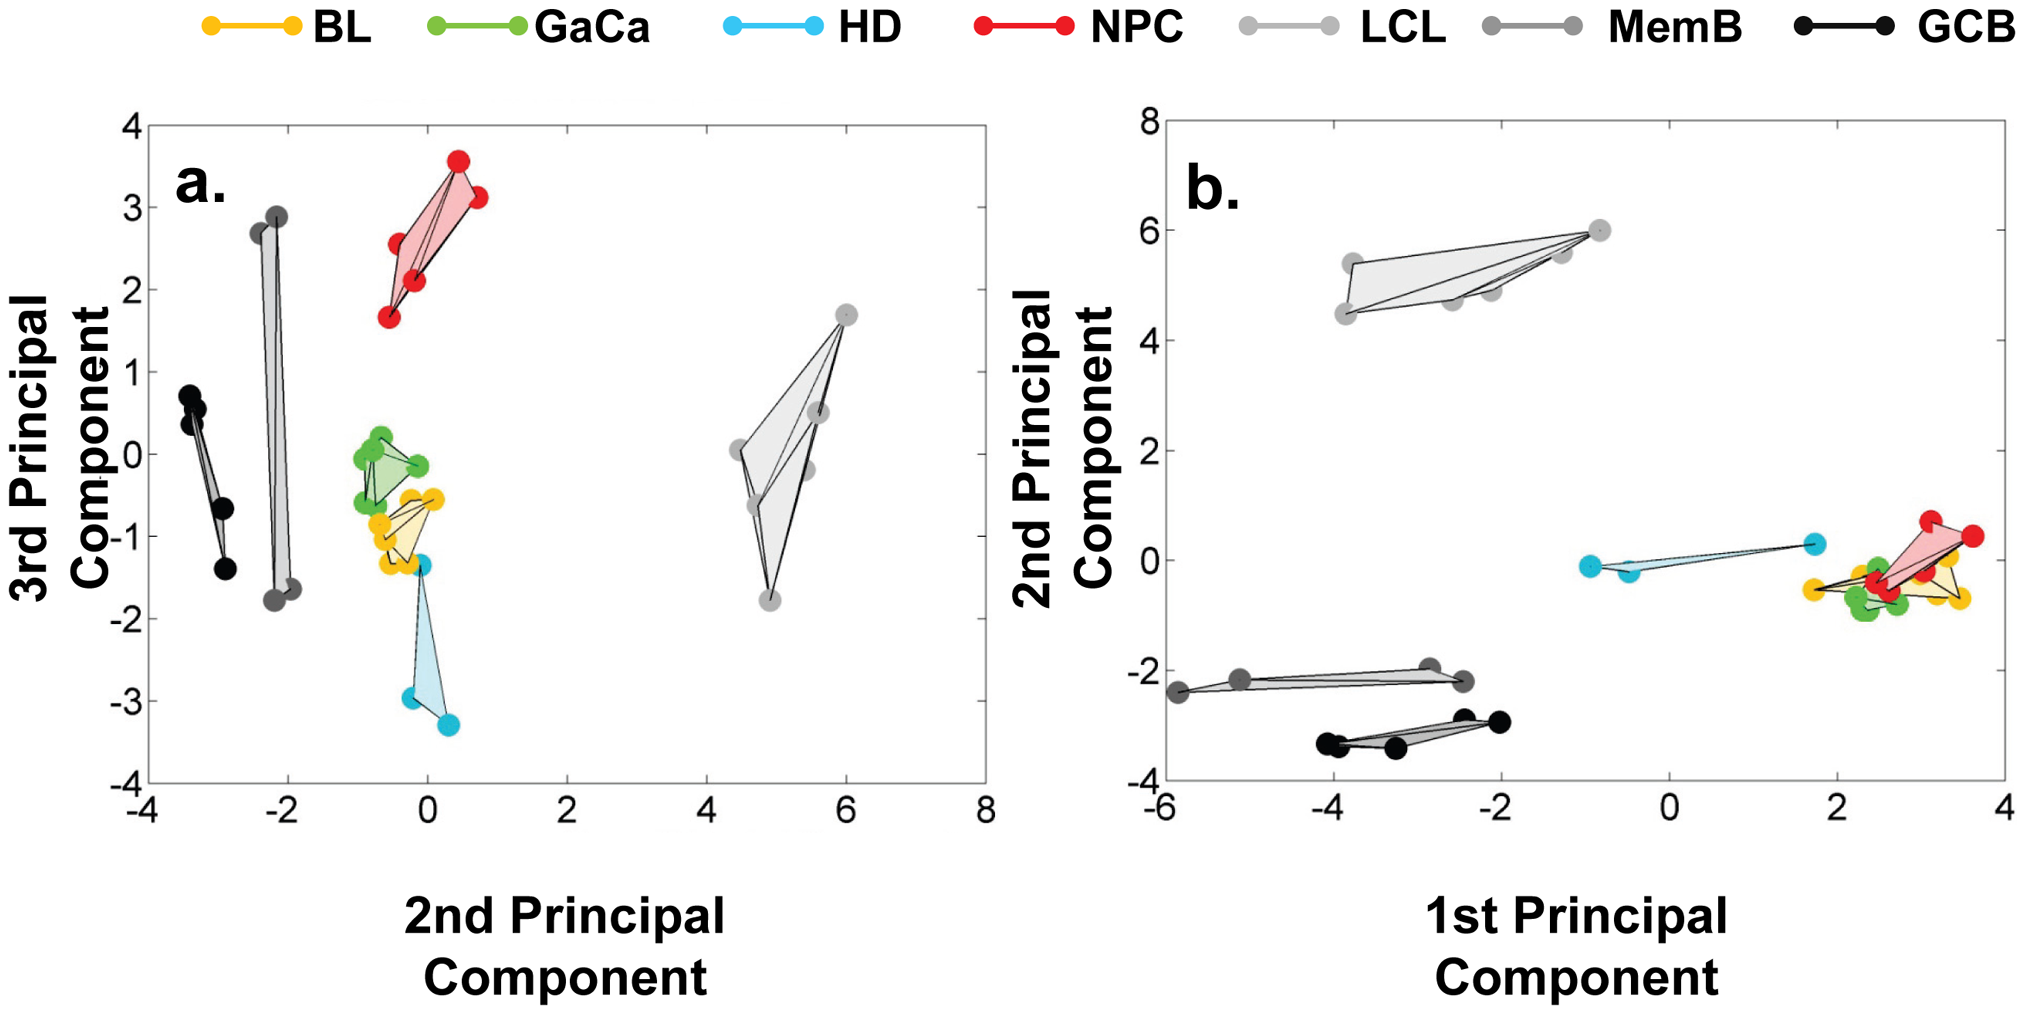 Principal component analysis (PCA) of miRNA expression in all tissues tested.